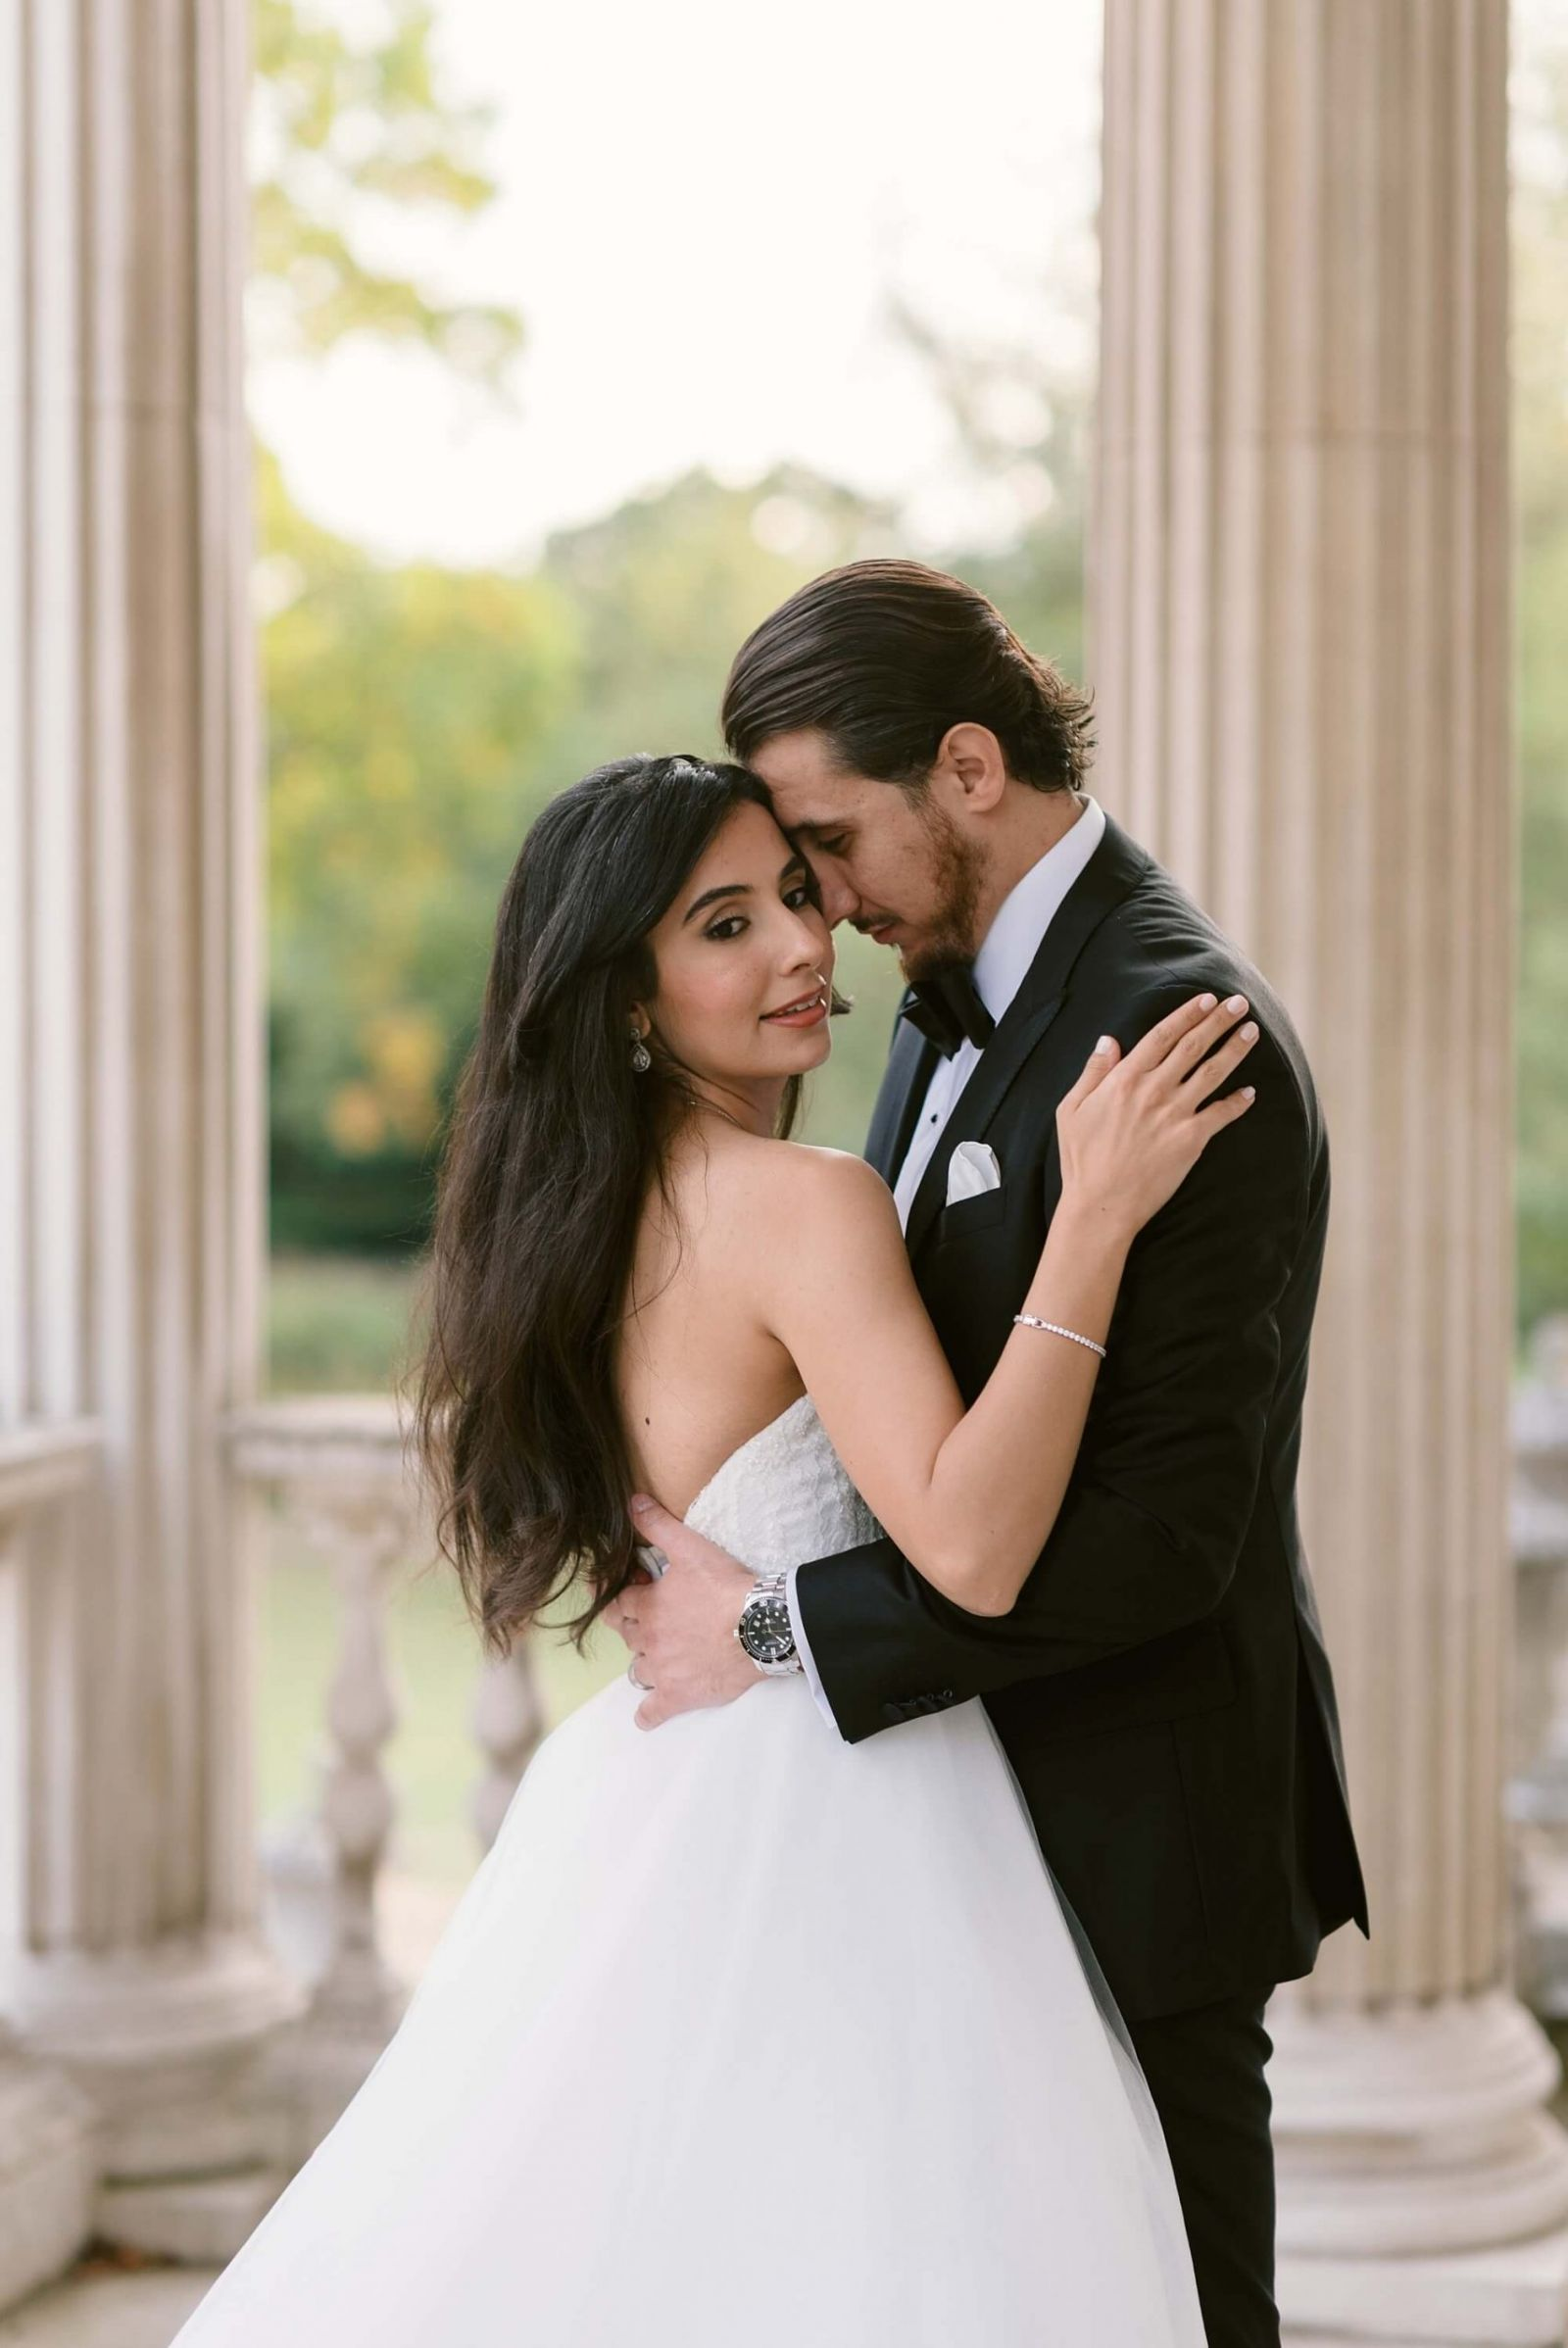 Chiswick House wedding photography Eva Tarnok Fine Art Photographer